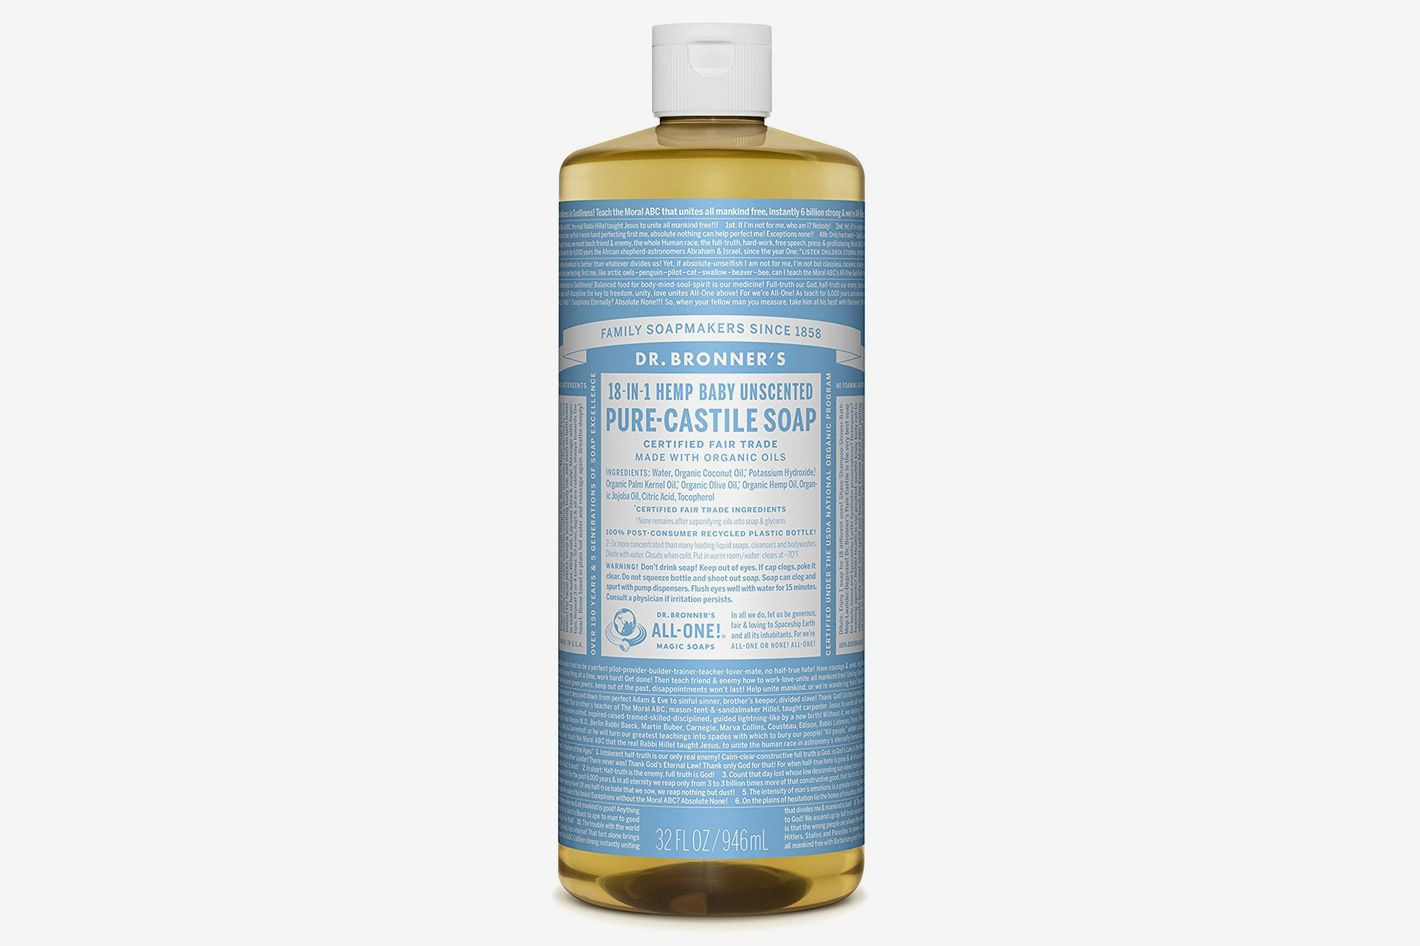 Dr. Bronner's Pure Castile Baby Liquid Soap